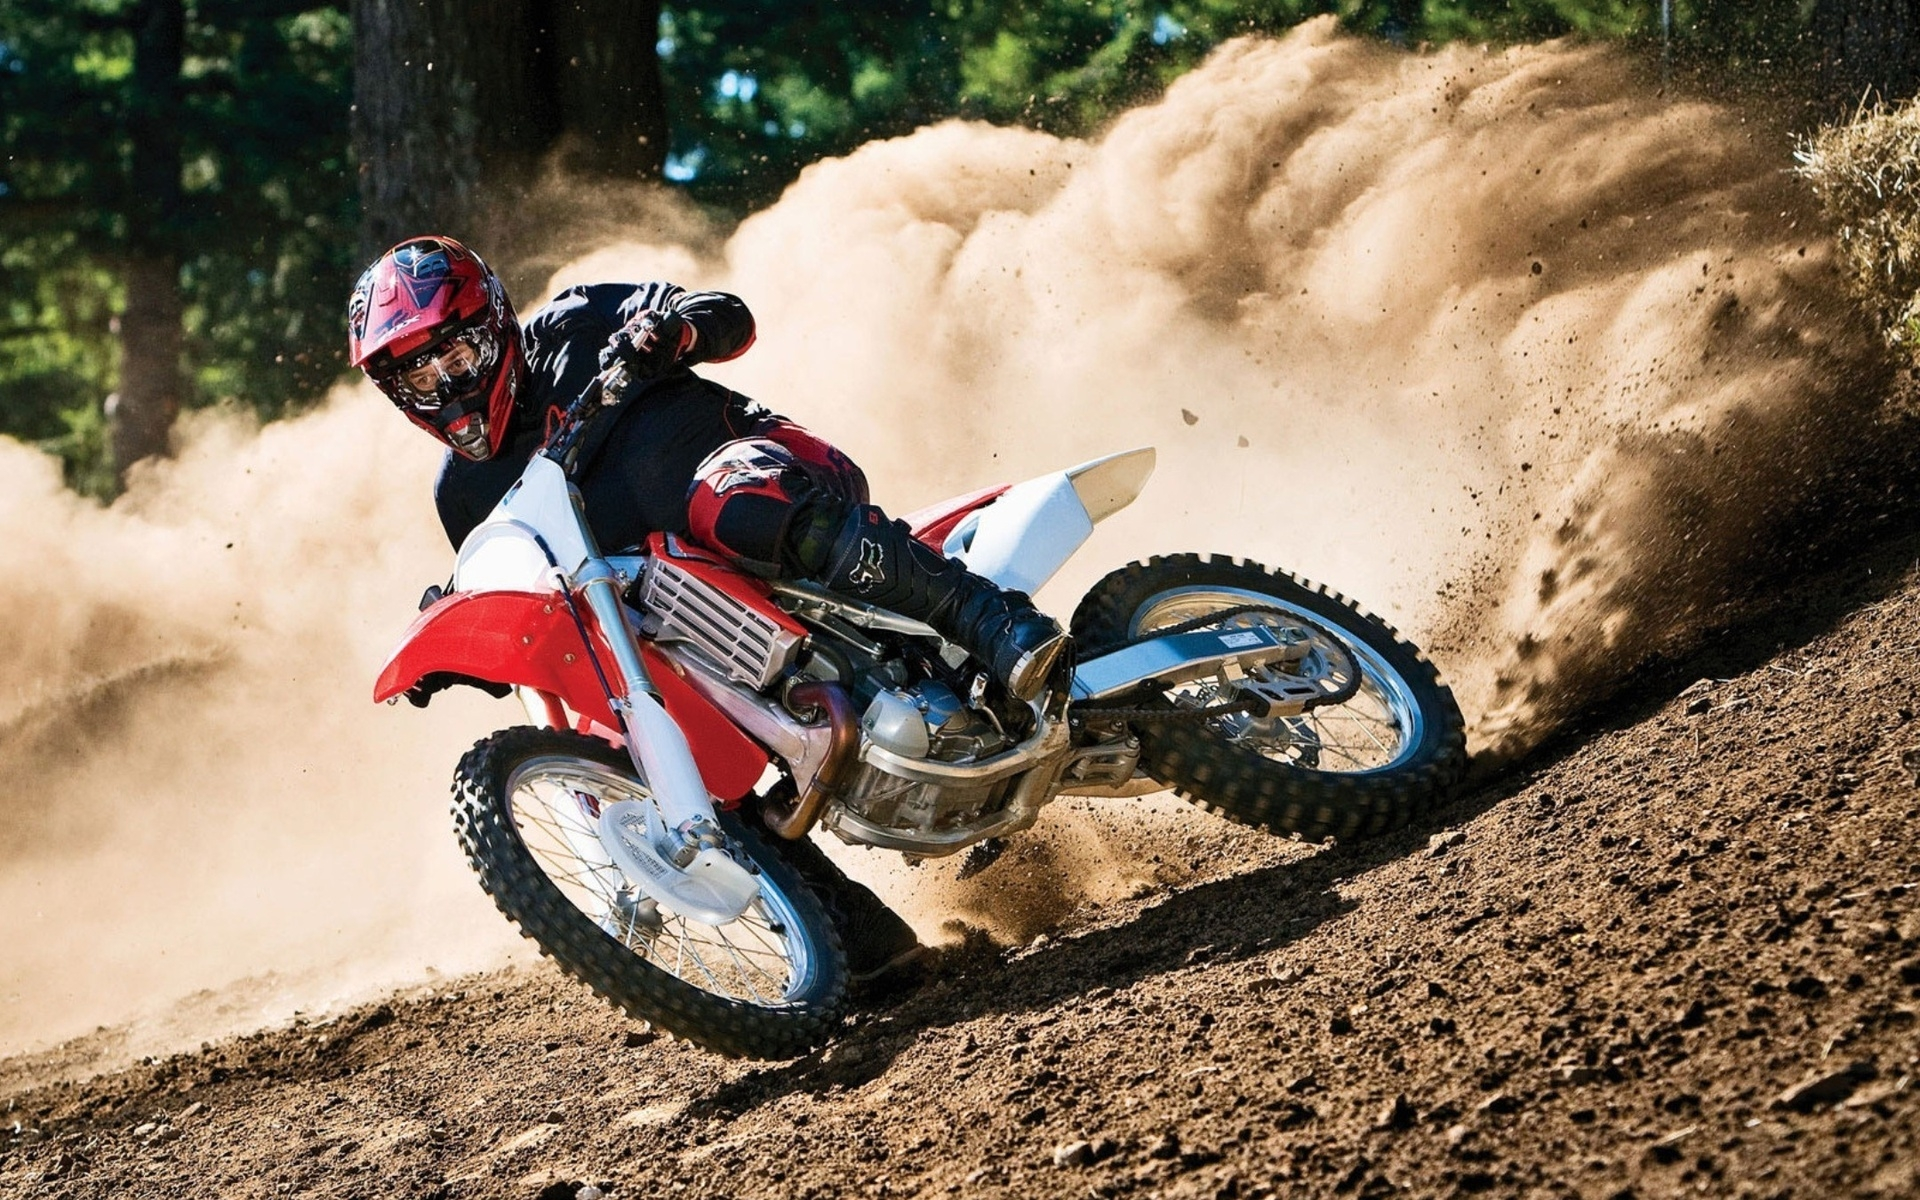 speed , drift, dust Wallpaper, HD Sports 4K Wallpapers, Images, Photos and Background